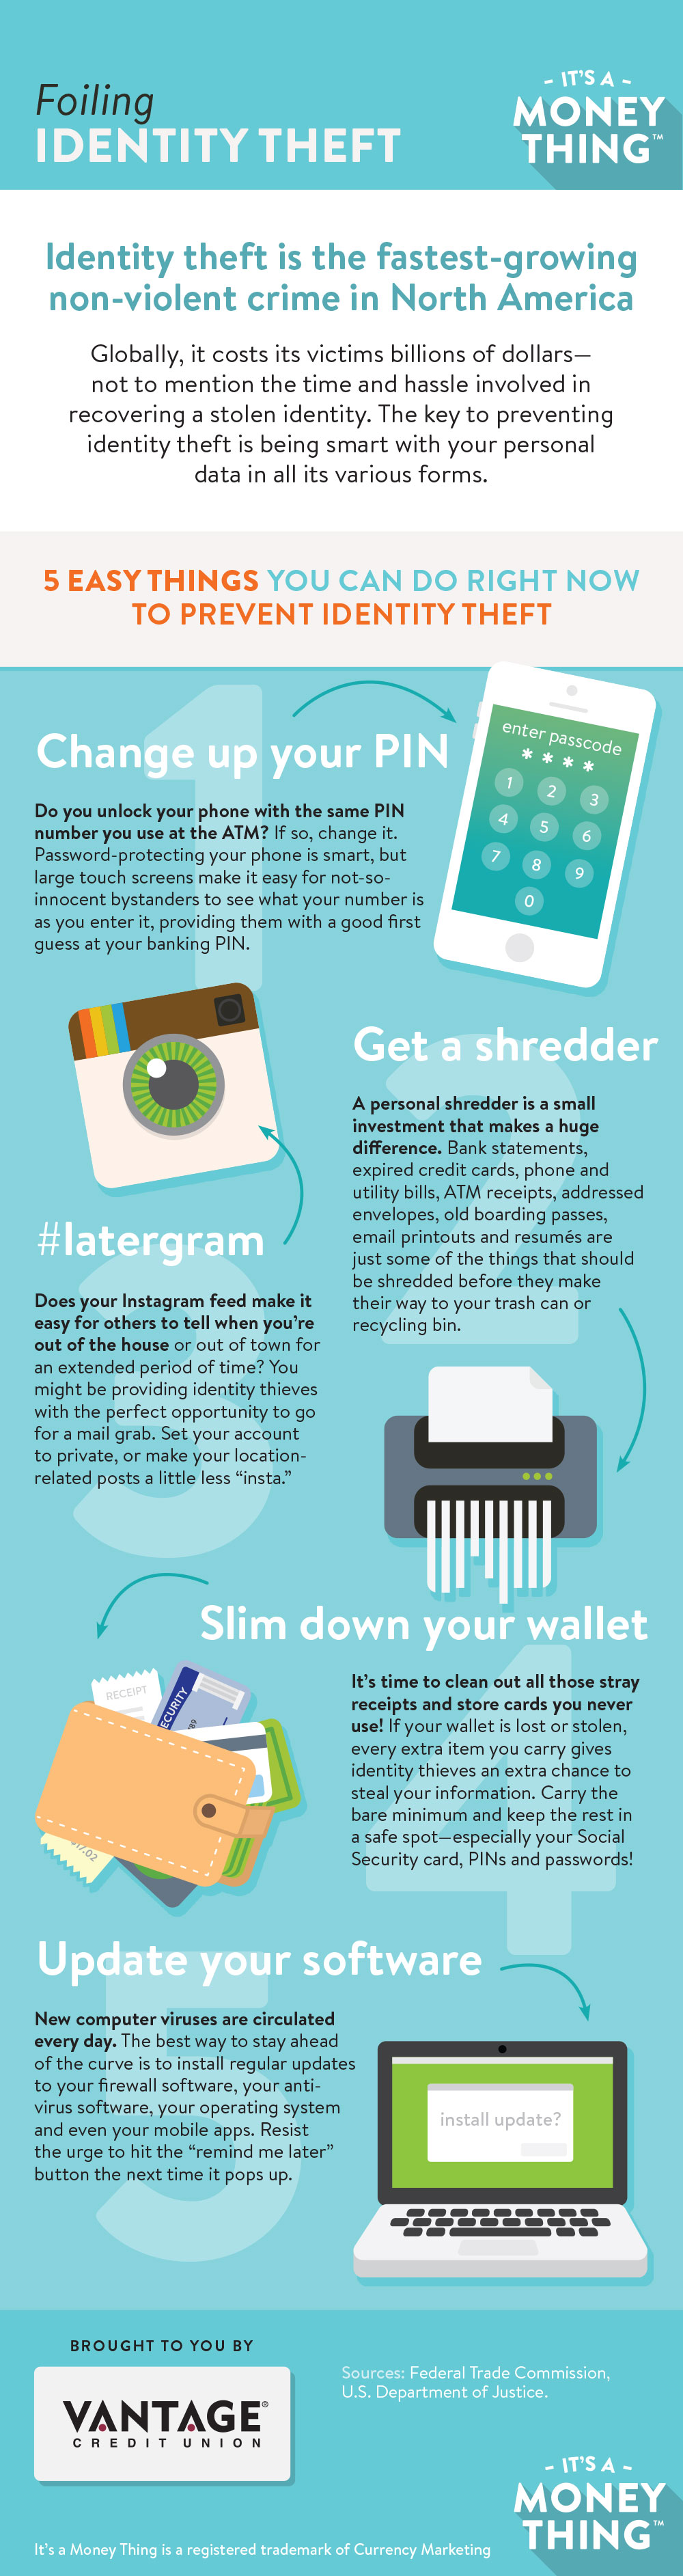 5-easy-ways-to-prevent-identity-theft-infographic